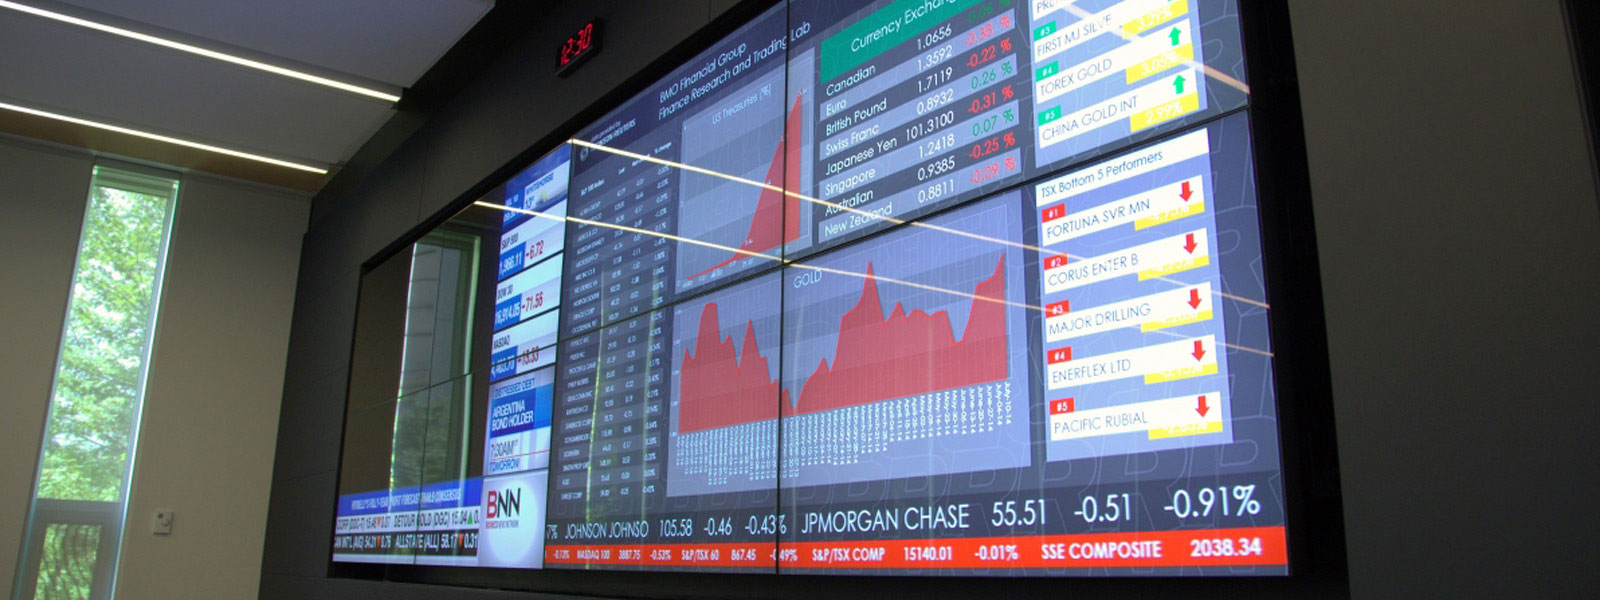 Multiple screens combined to display stock market data